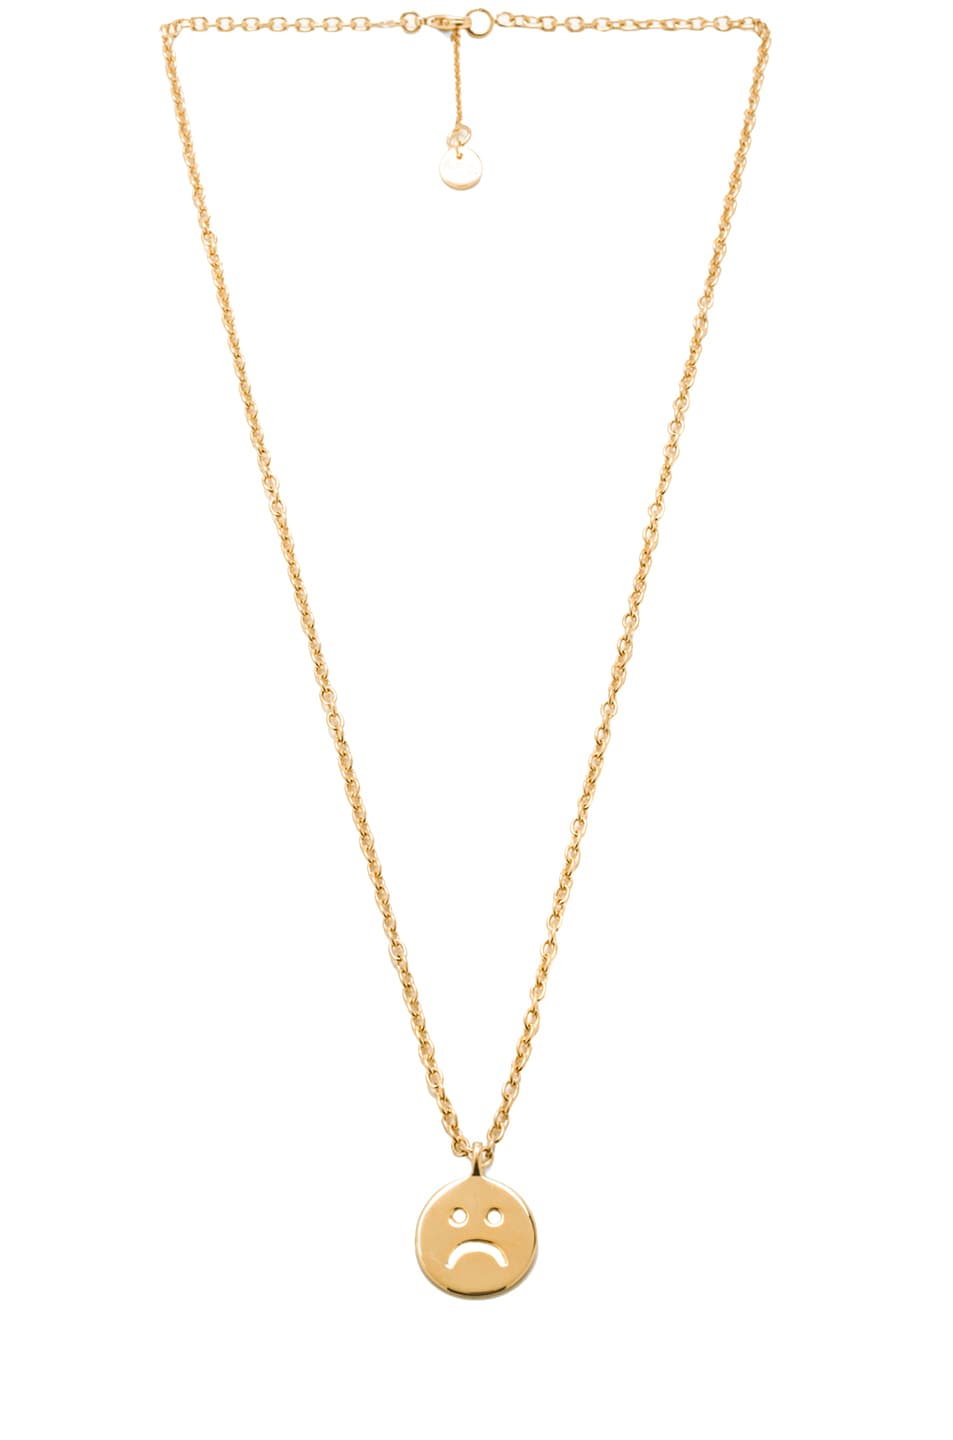 great brown at p price jewerly ofer buy apc gold footshop c necklace a en